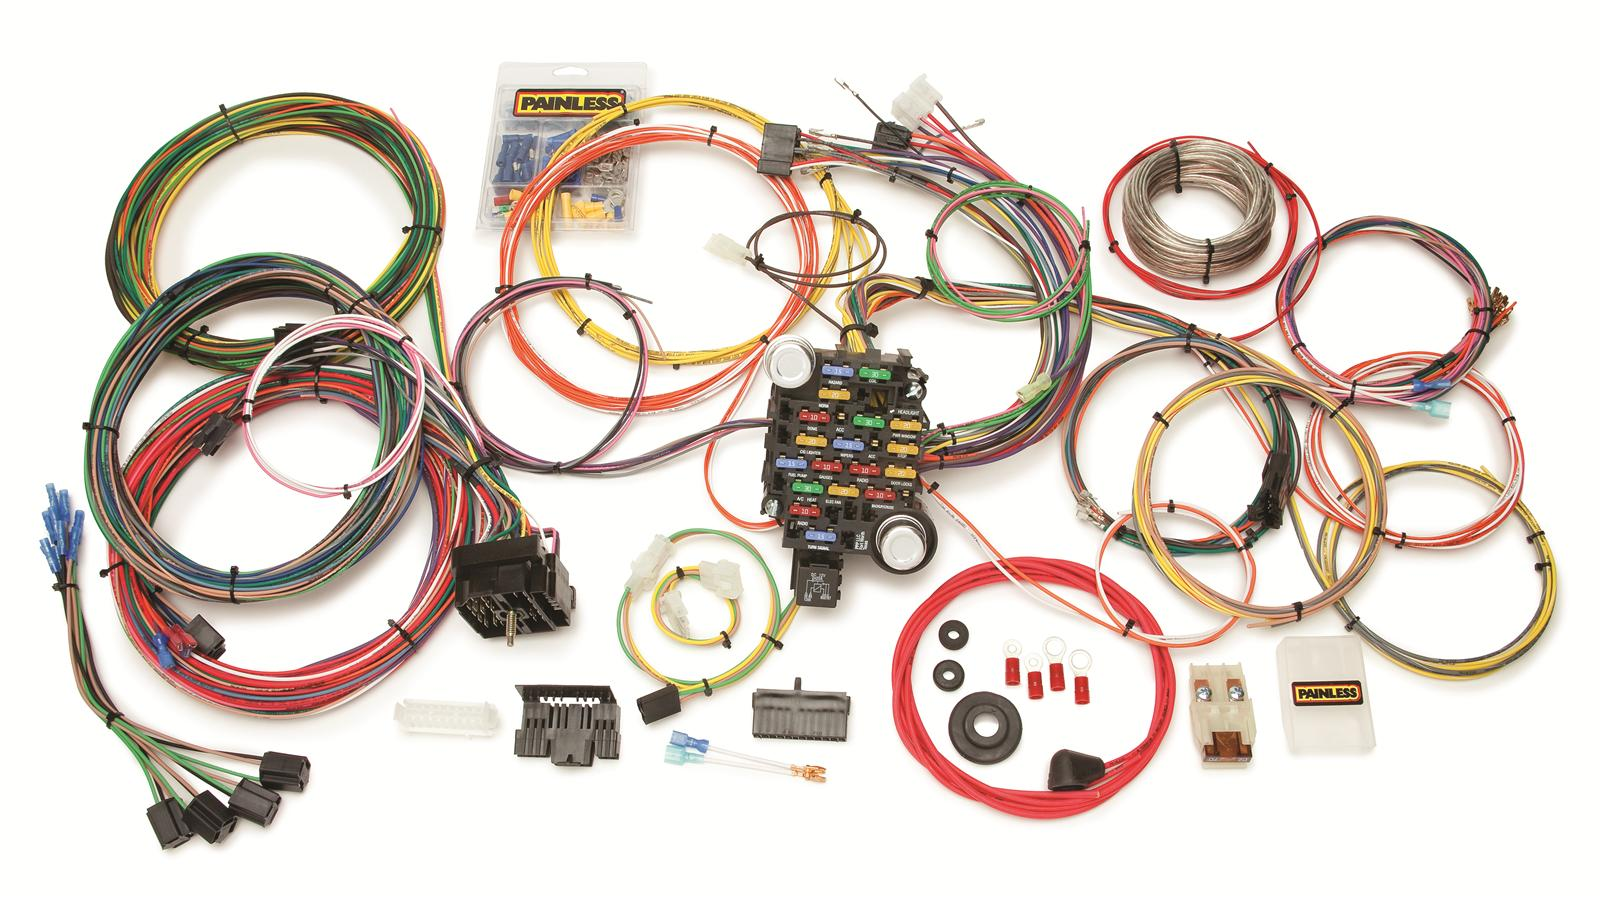 Painless Performance Gmc Chevy Truck Harnesses 10205 Free Shipping Porsche 1973 1914 Fuse Box Diagram On Orders Over 49 At Summit Racing